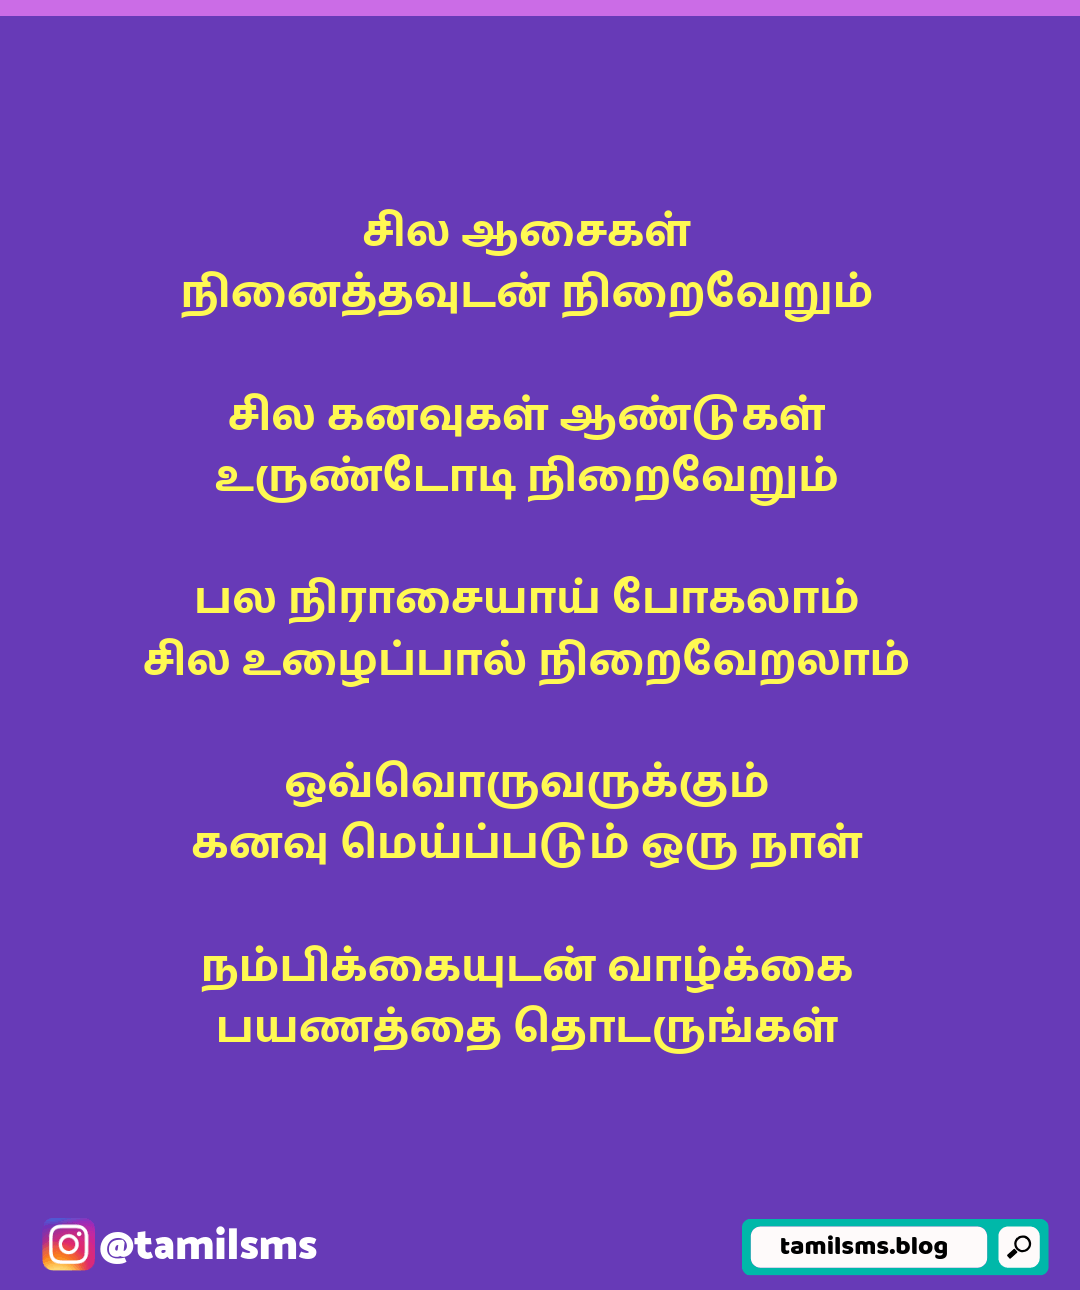 Tamil Sms Morning Greetings Quotes Tamil Motivational Quotes Feelings Quotes